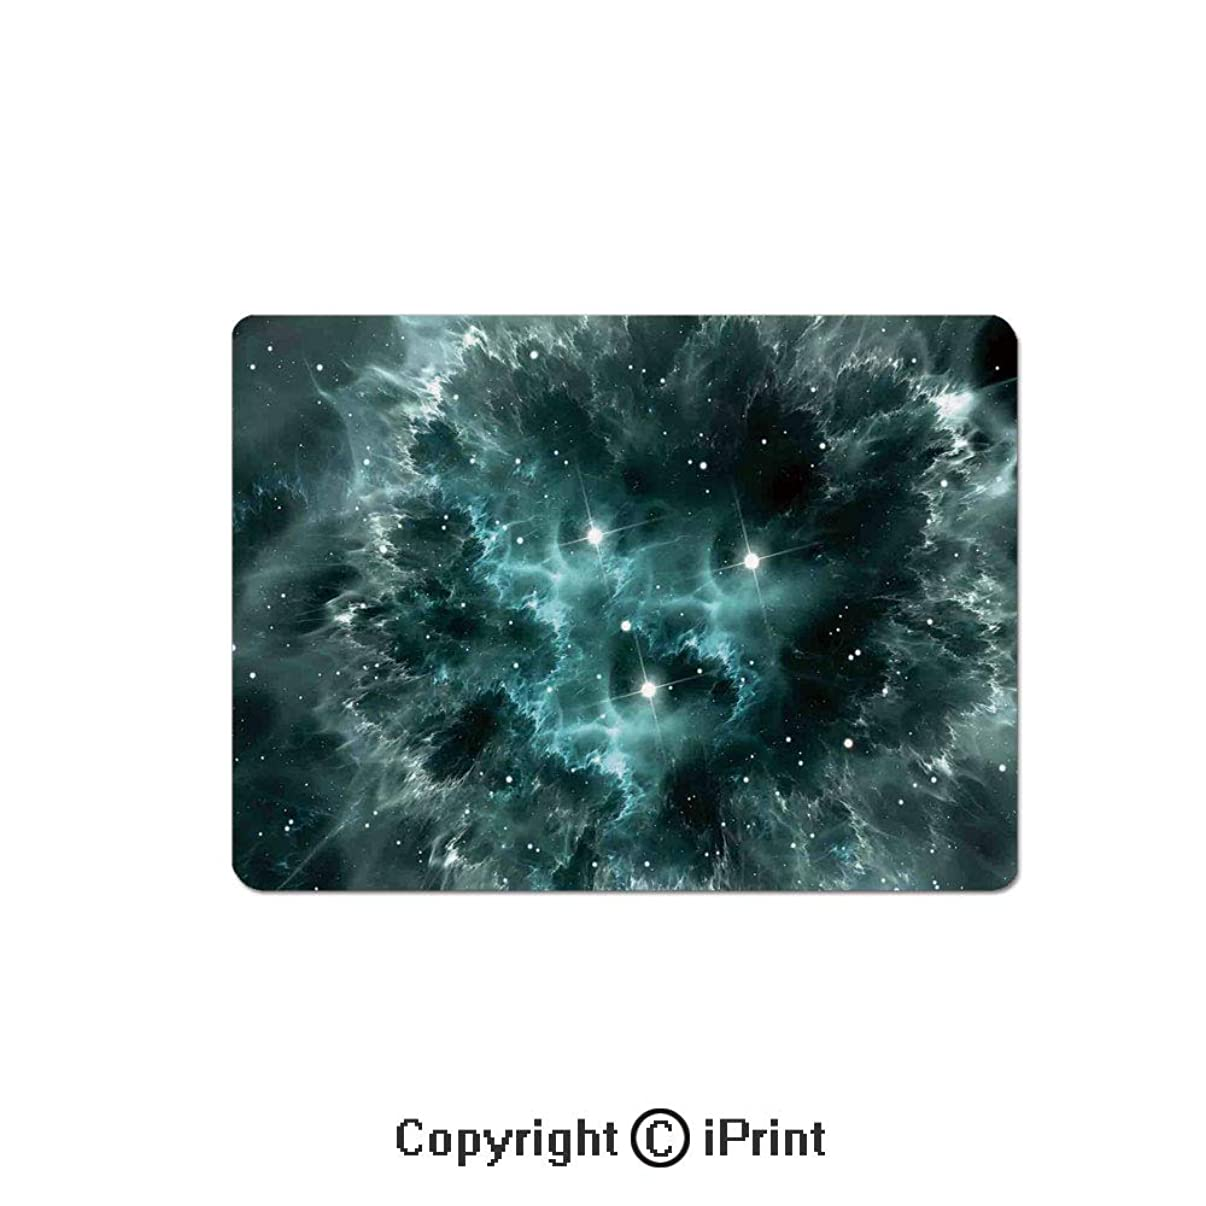 Anti-Slip Mouse Pad,Space Nebula in The Space with Crystal Star Cluster Galaxy Solar System Cosmos Print Mouse Mat,Non-Slip Rubber Base Mousepad,7.9x9.5 inch,Teal